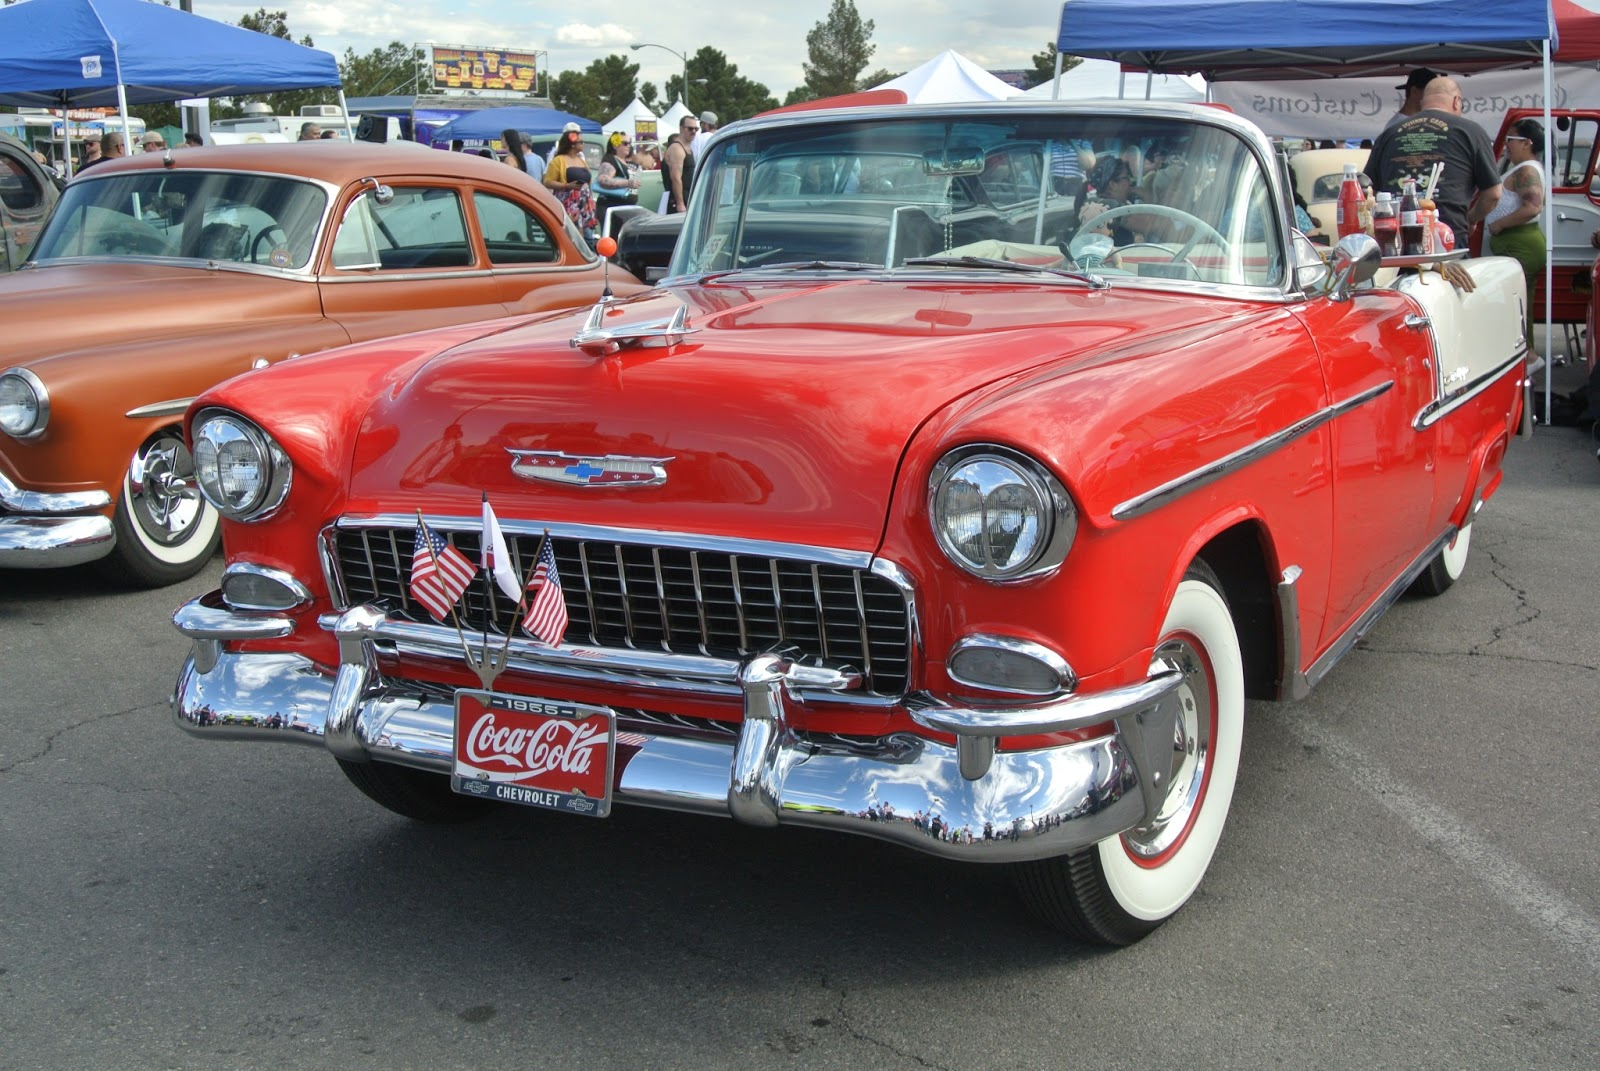 Photo focus viva las vegas 16 rockabilly weekender saturday car show and tattoo contest